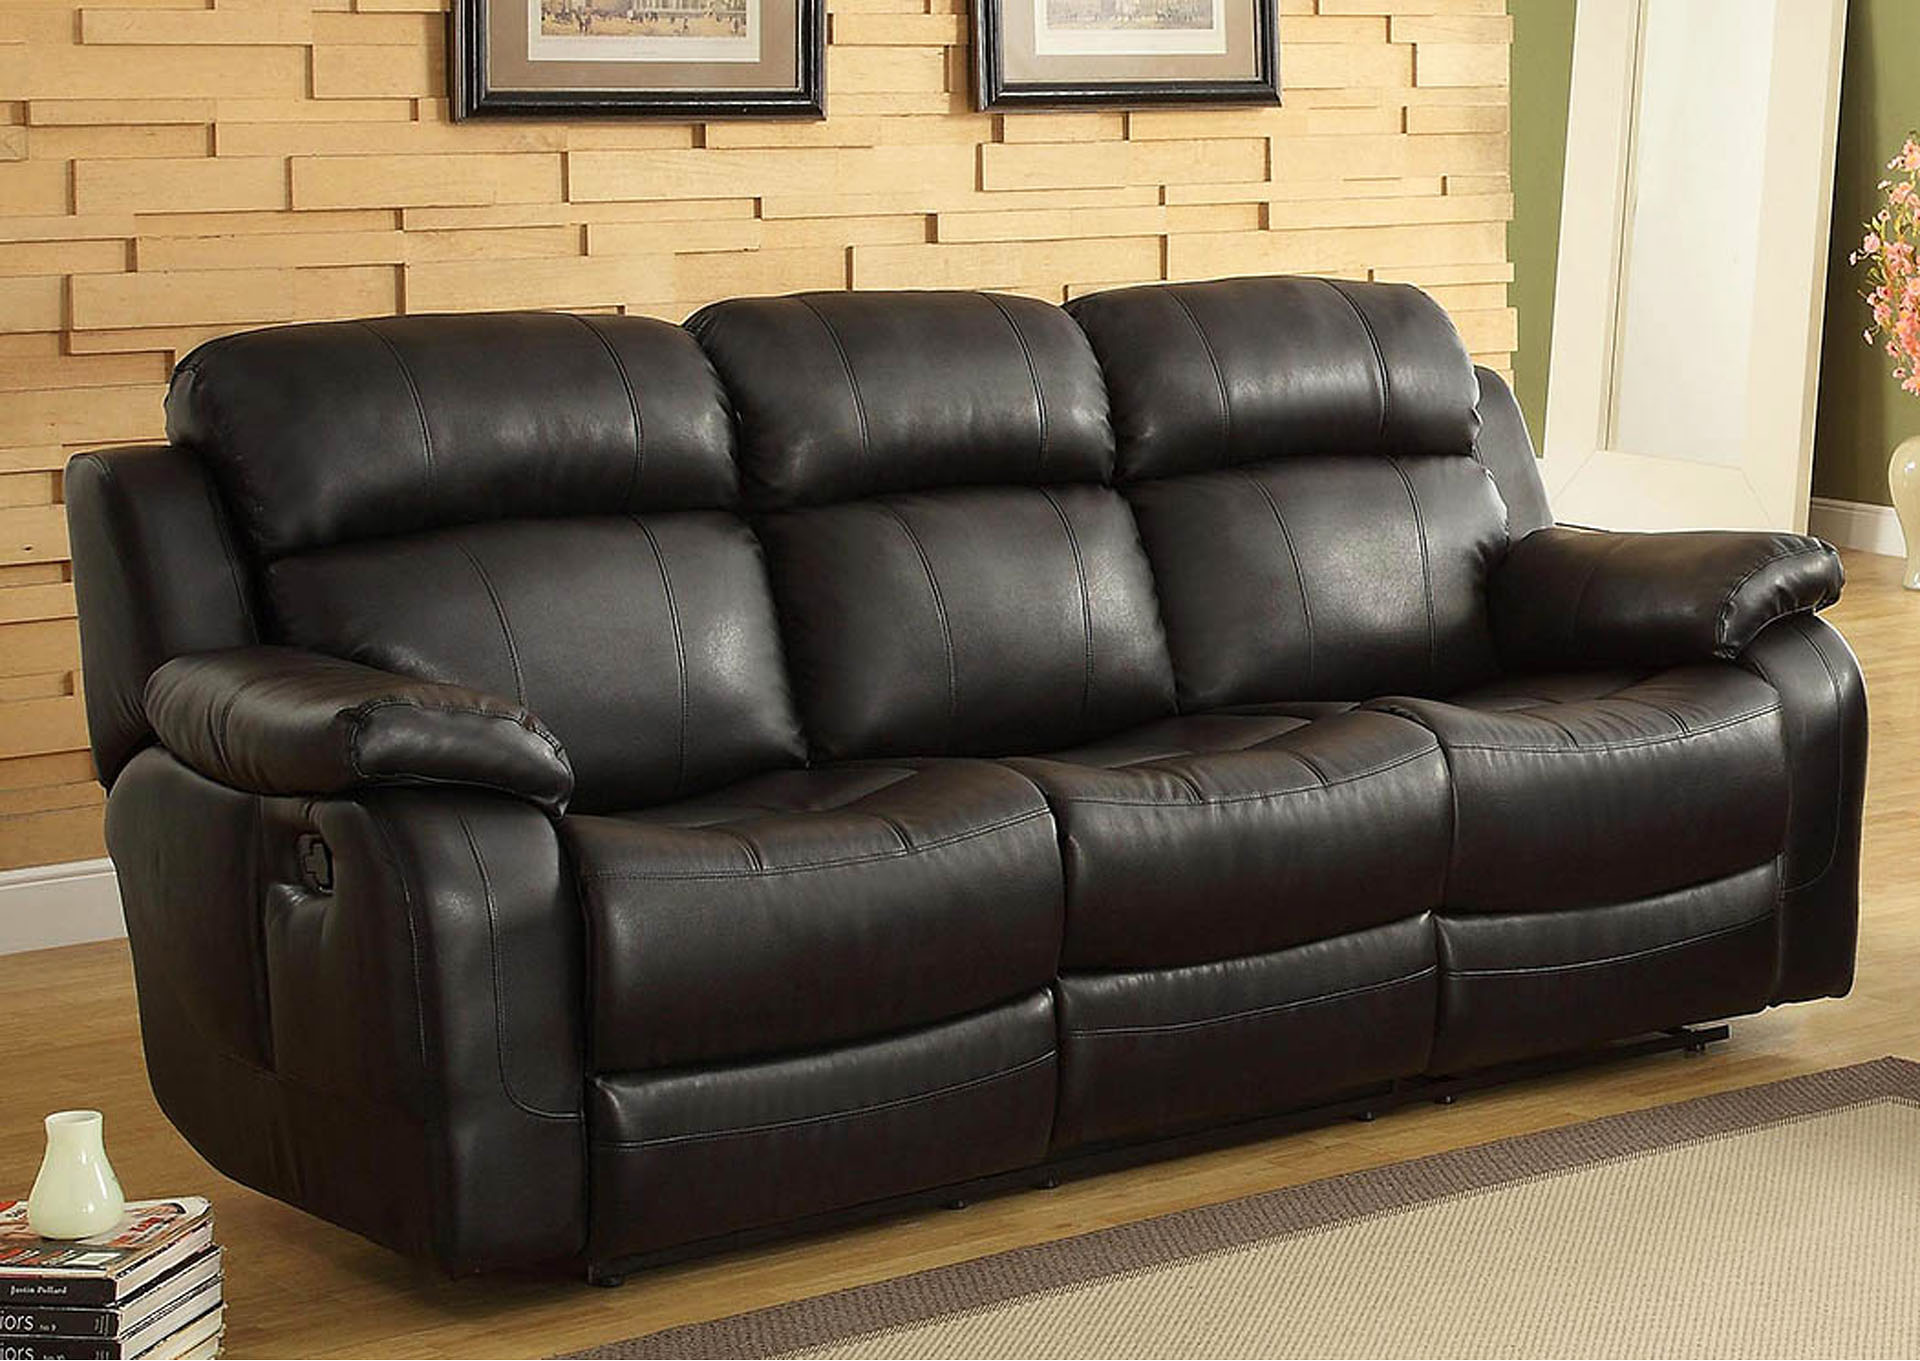 Stylehouse Furnishings Marille Black Double Reclining Sofa W Center